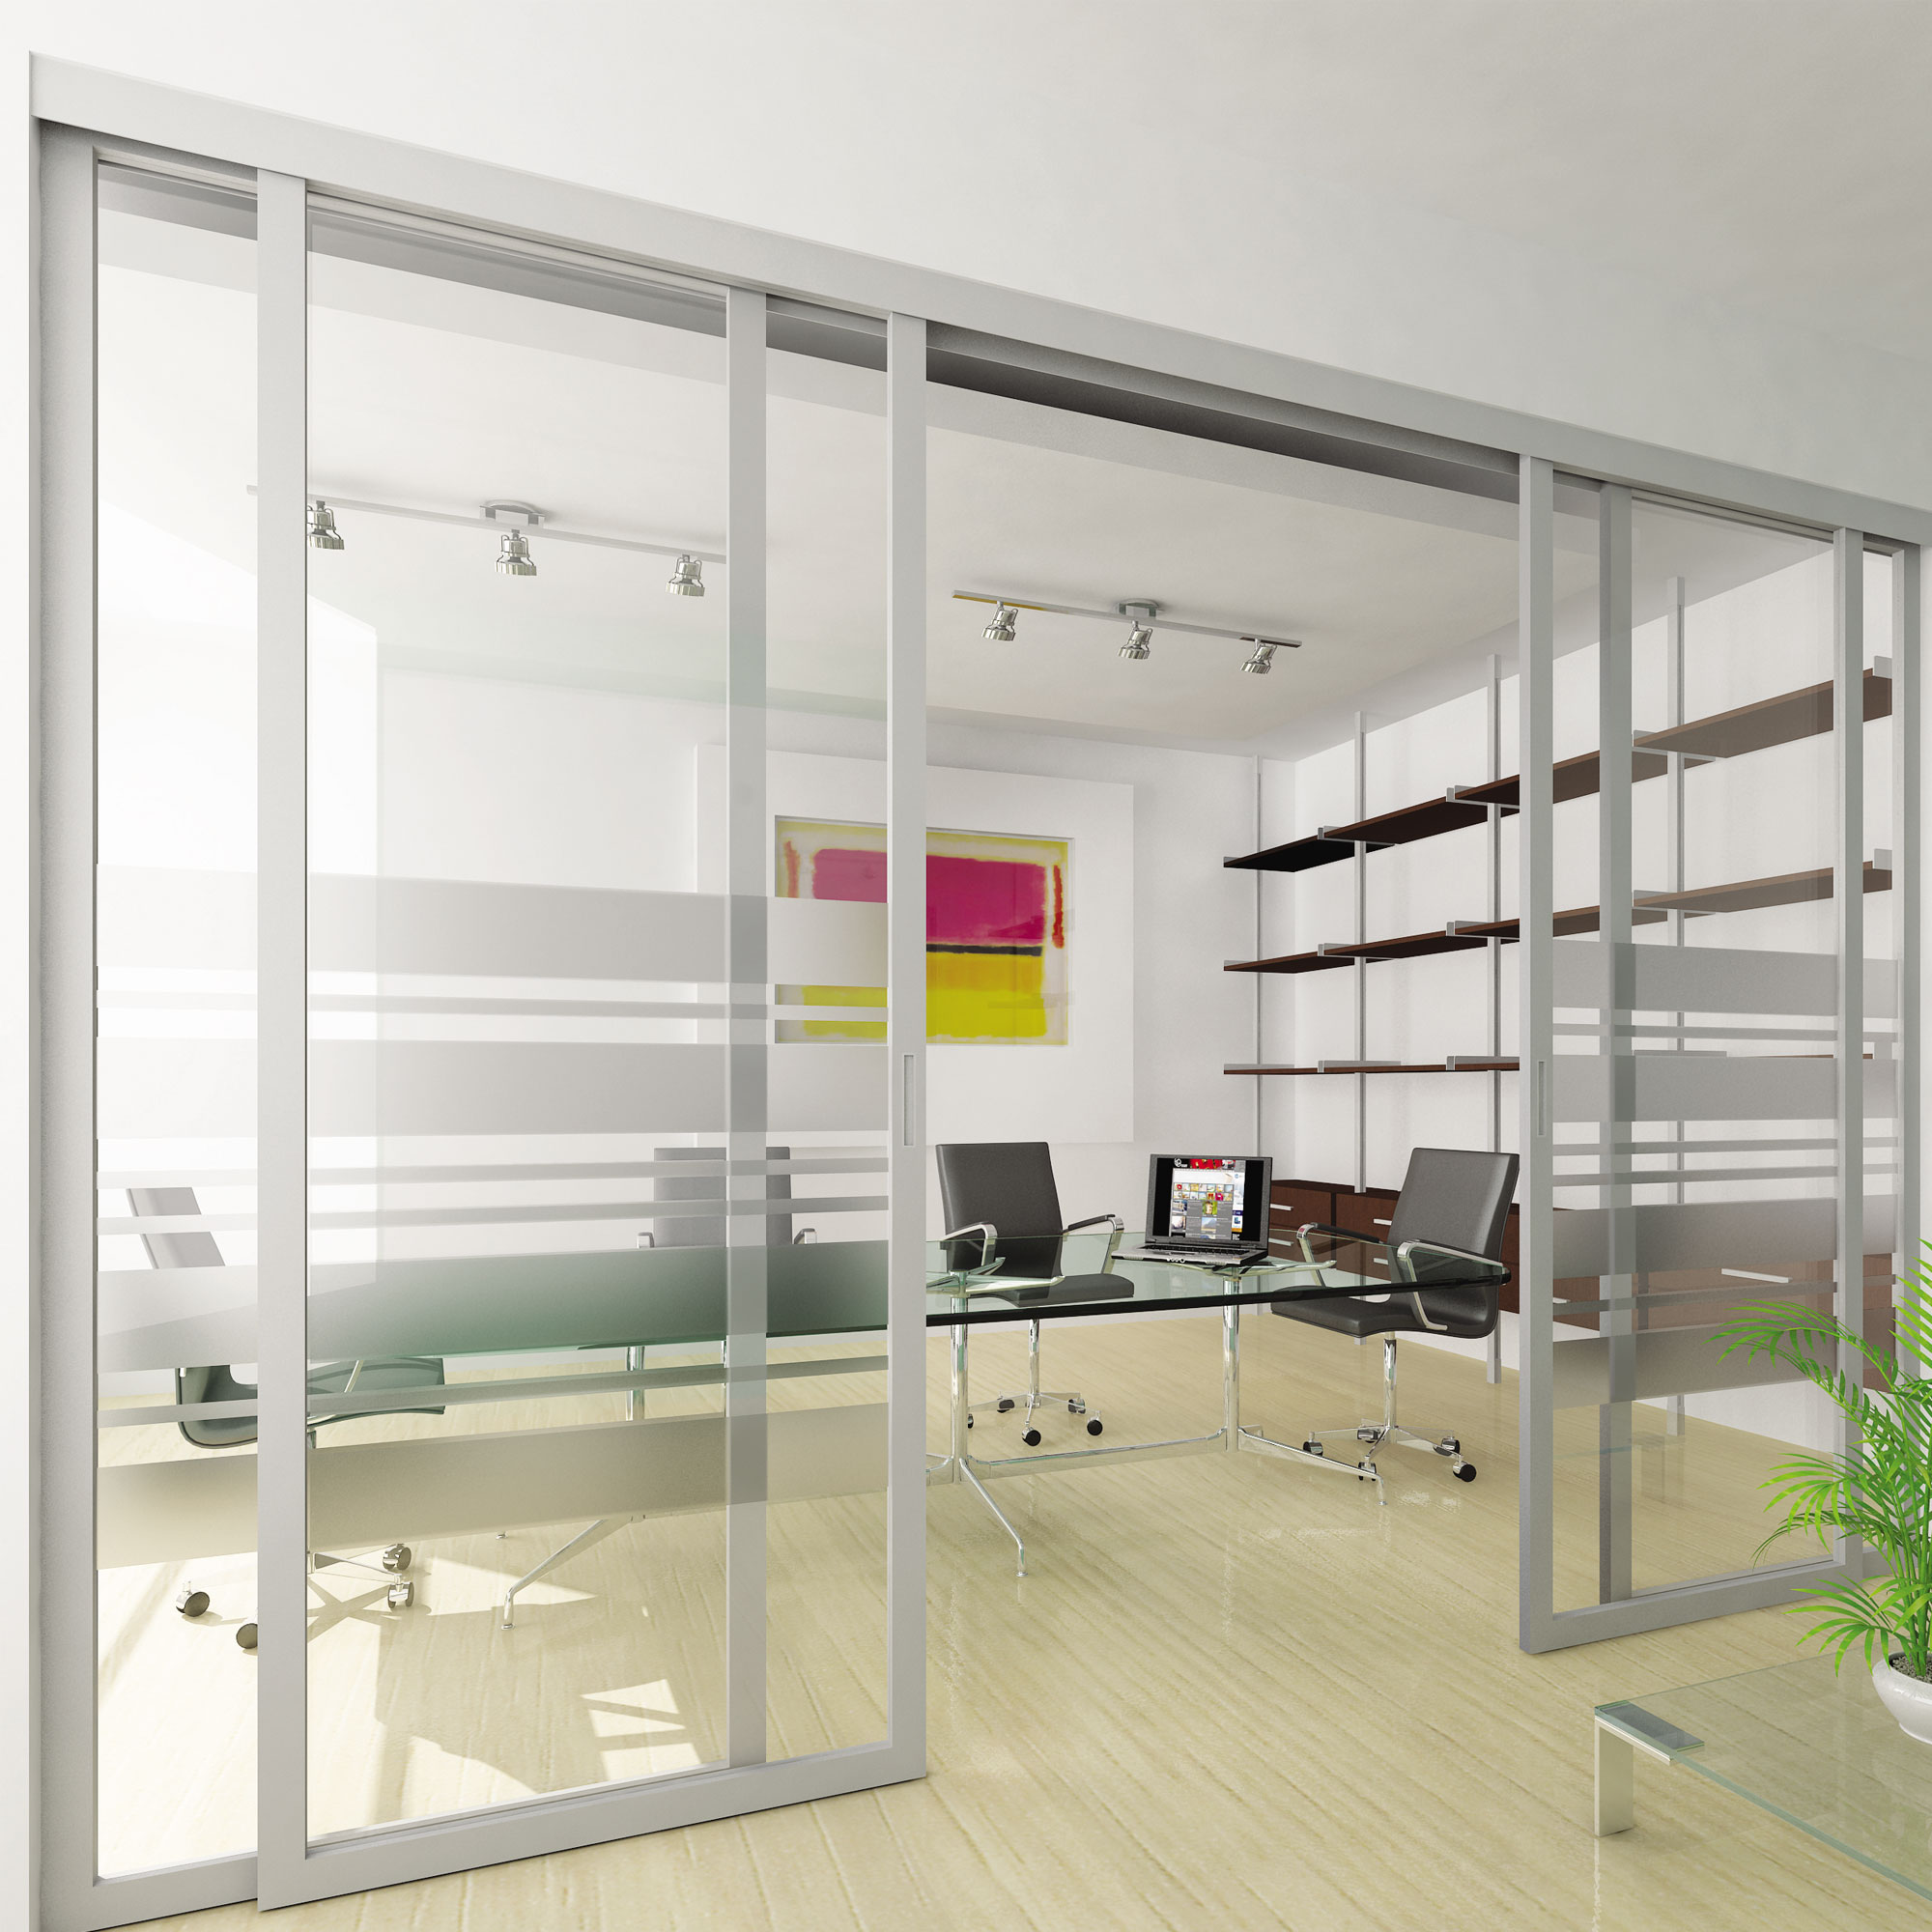 Sliding Doors Of Glass: Sliding Office Doors And Panels Features Aluminum Frame